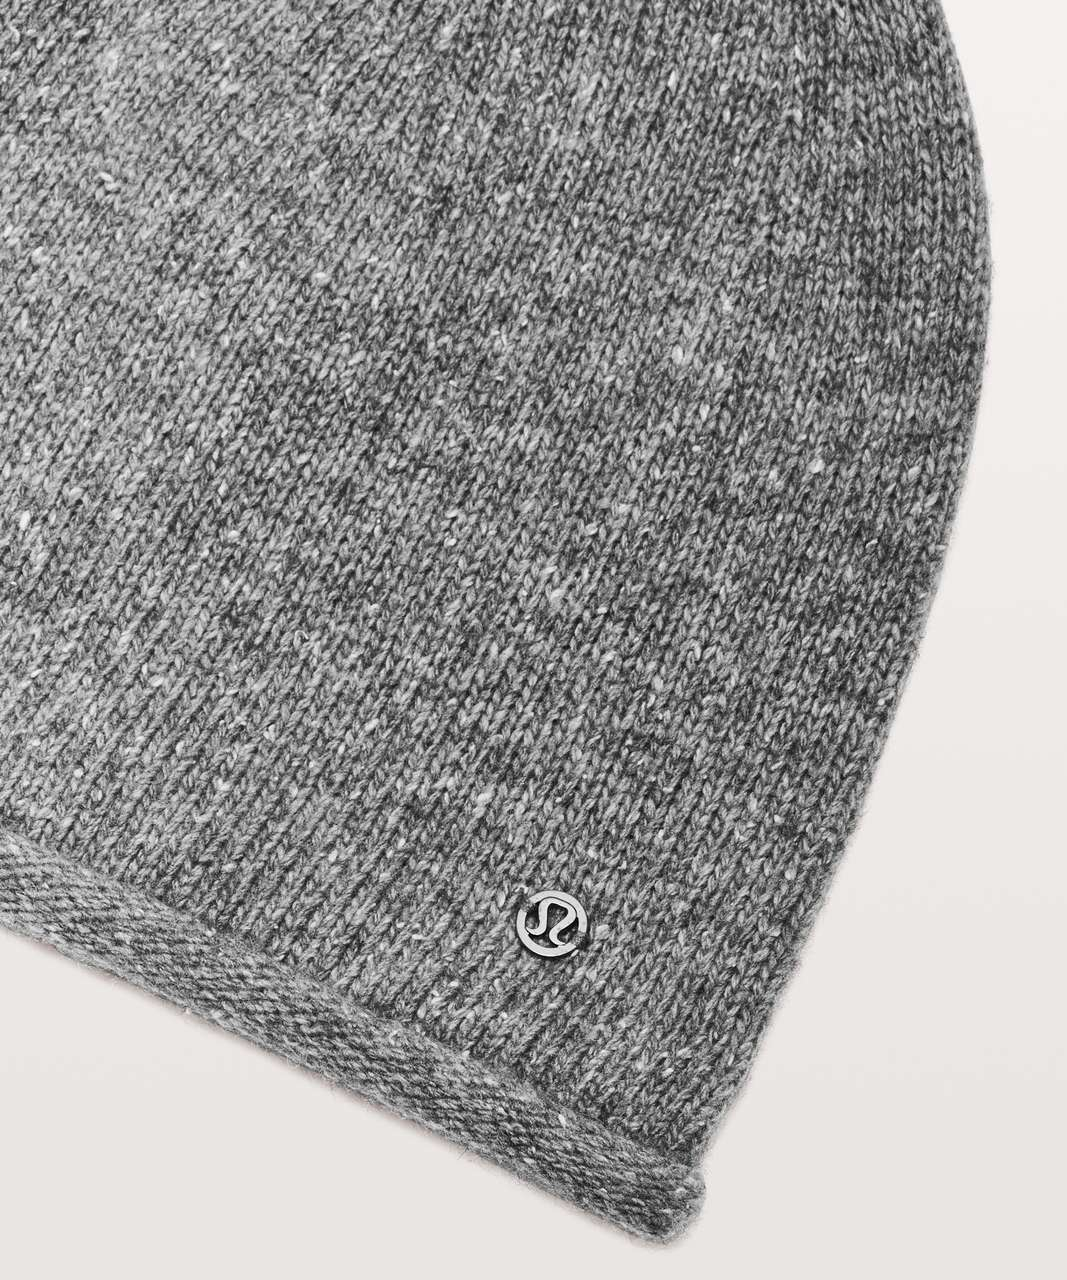 Lululemon Keep Me Toasty Beanie - Heathered Dark Grey - lulu fanatics c6b5869f4ebc